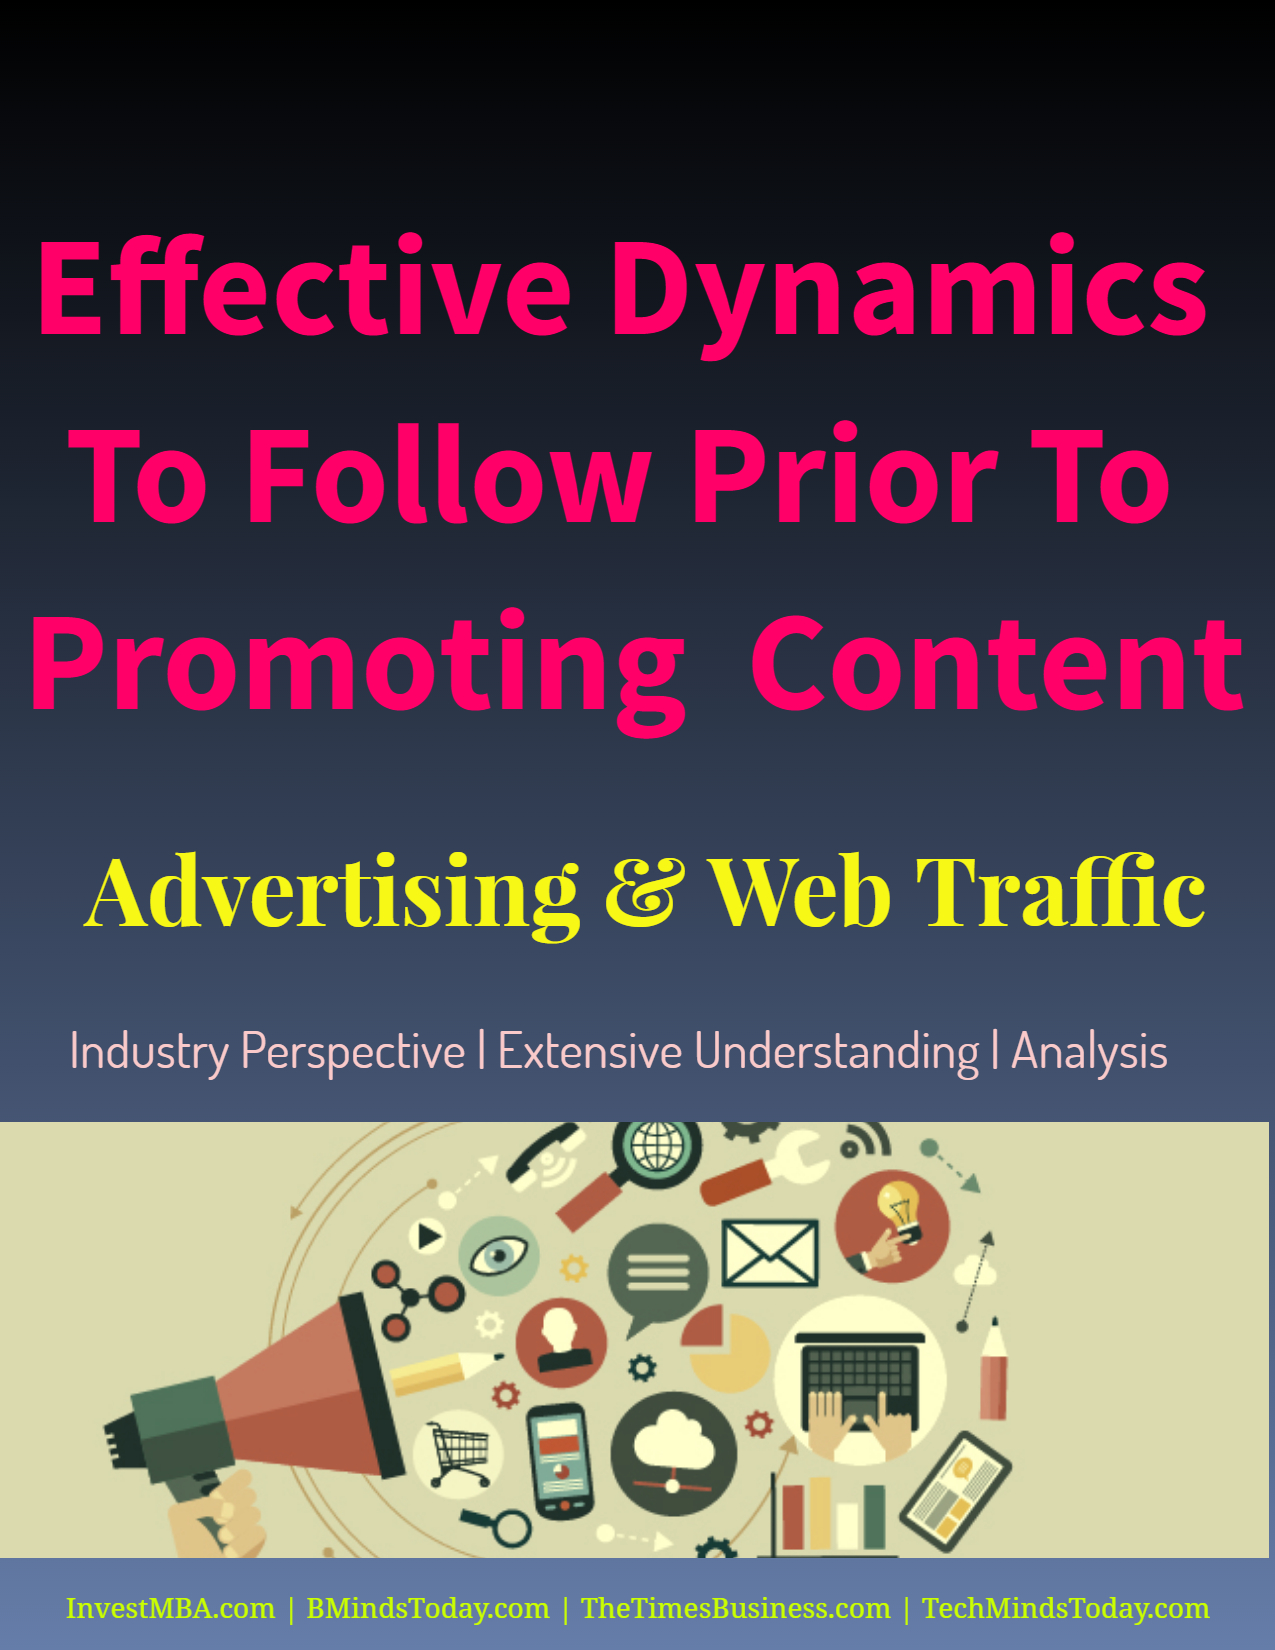 Highly Effective Dynamics To Follow Prior To Promoting Articles articles Highly Effective Dynamics To Follow Prior To Promoting Content | Articles Highly Effective Dynamics To Follow Prior To Promoting Articles